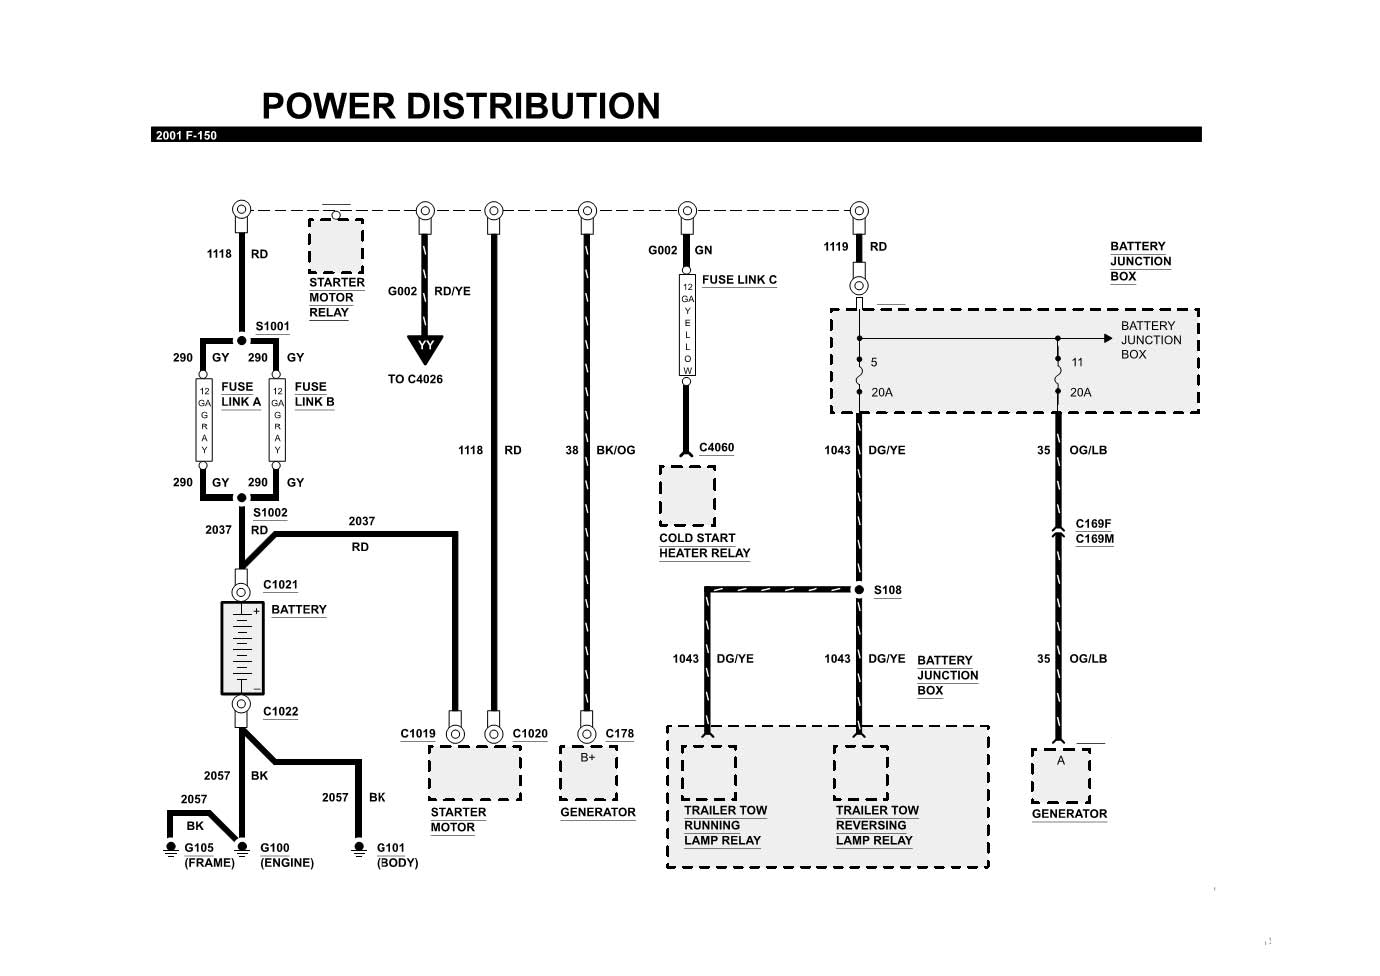 [DIAGRAM] 2003 Ford Taurus Fuel Pump Wiring Diagram FULL